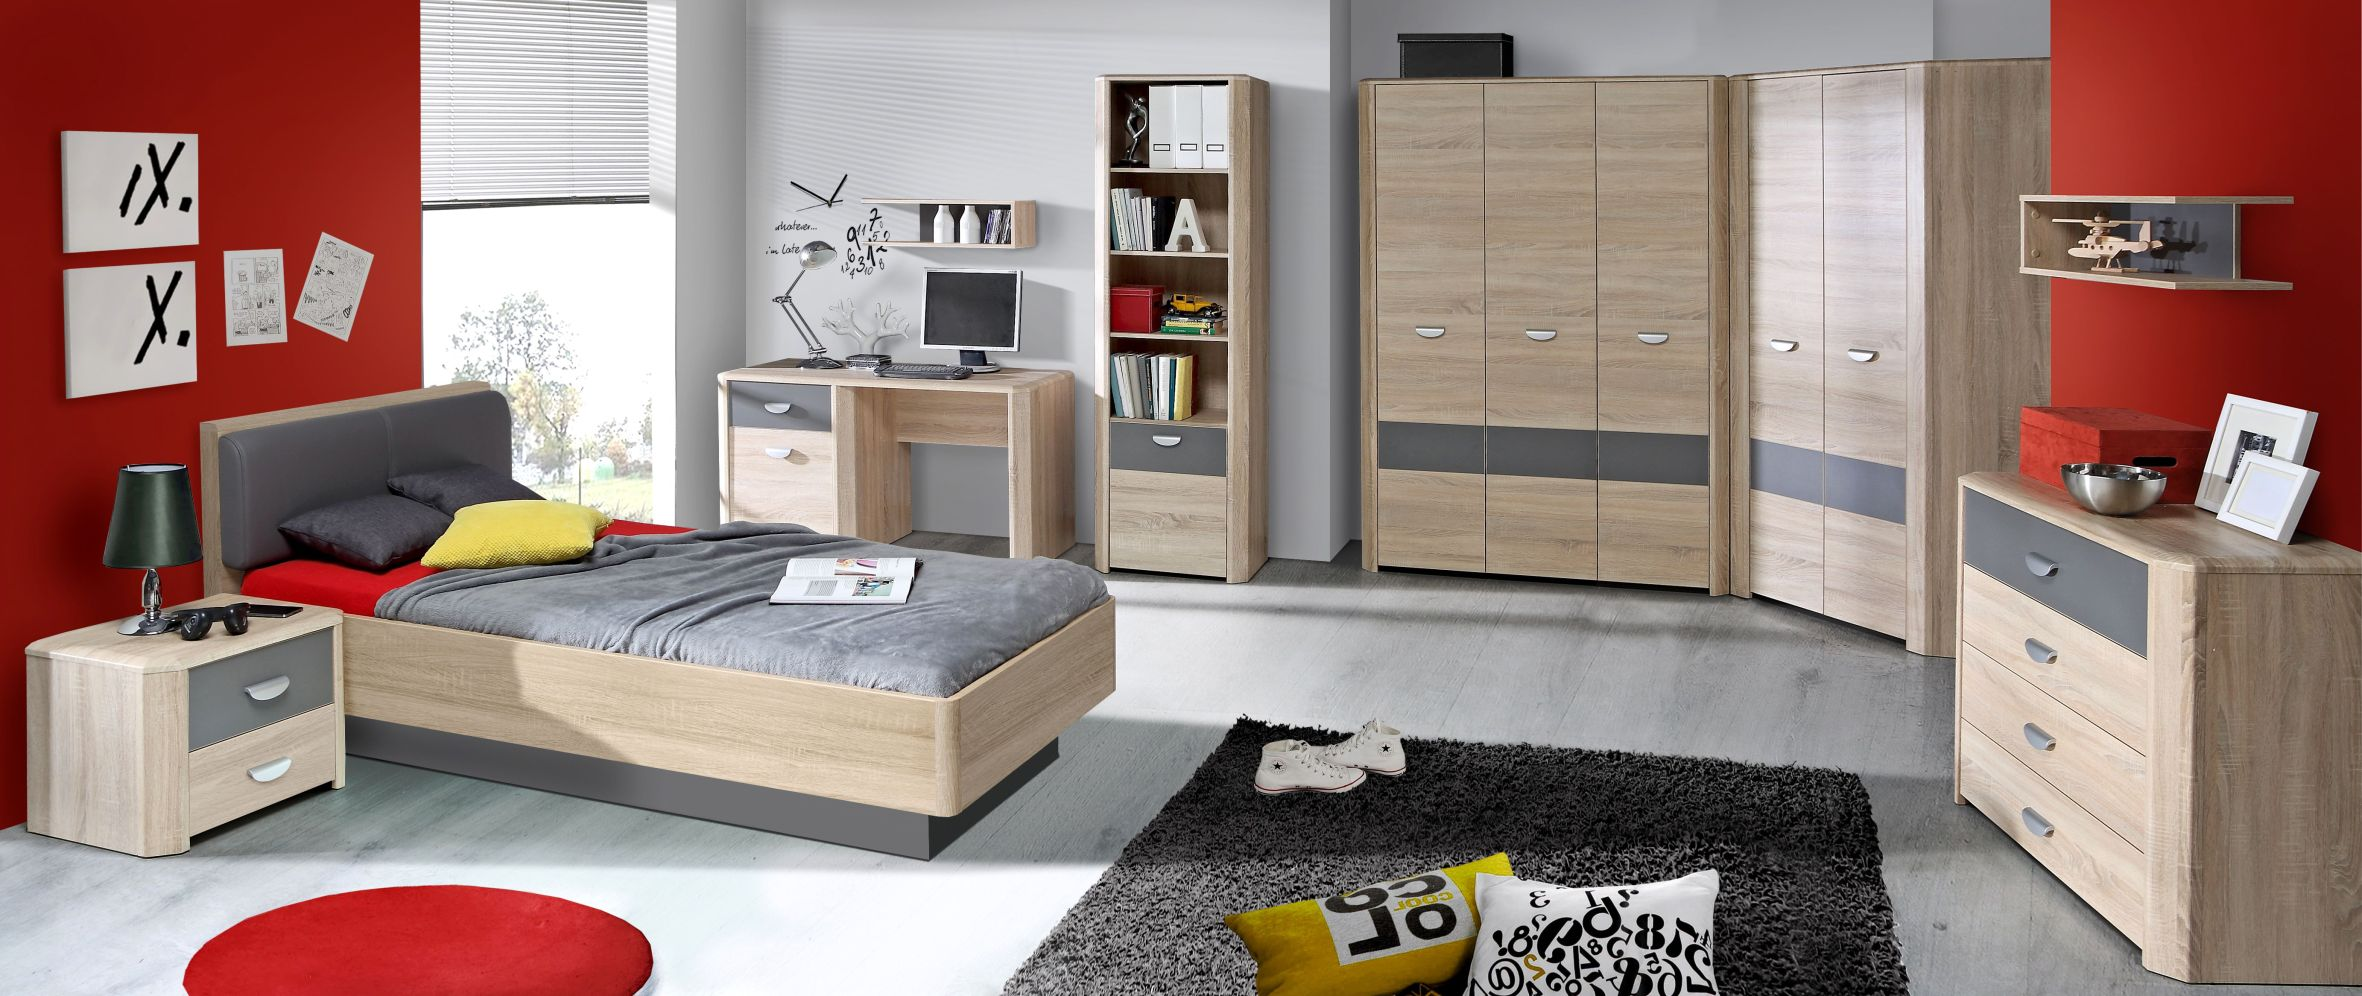 jugendzimmer 140x200 jugendbett yoop kopfteil gepolstert. Black Bedroom Furniture Sets. Home Design Ideas